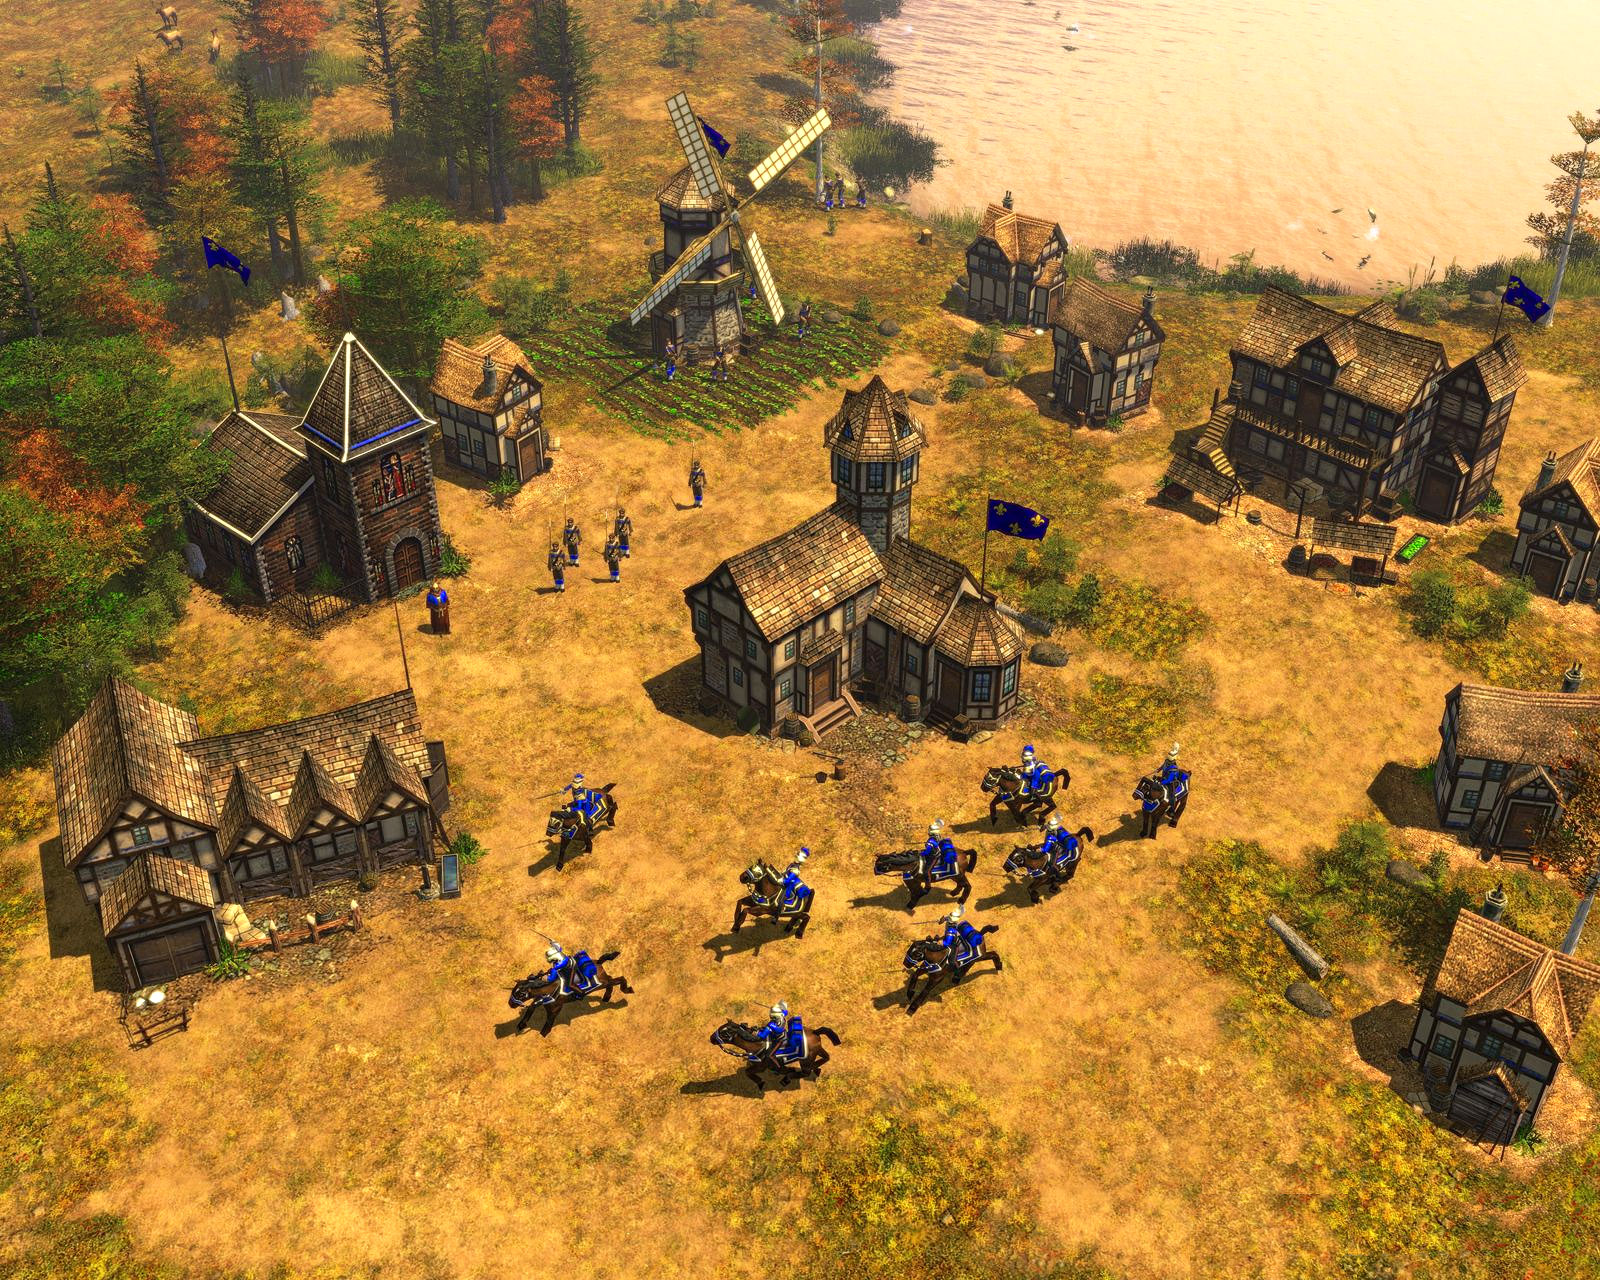 1600x1280 > Age Of Empires III Wallpapers